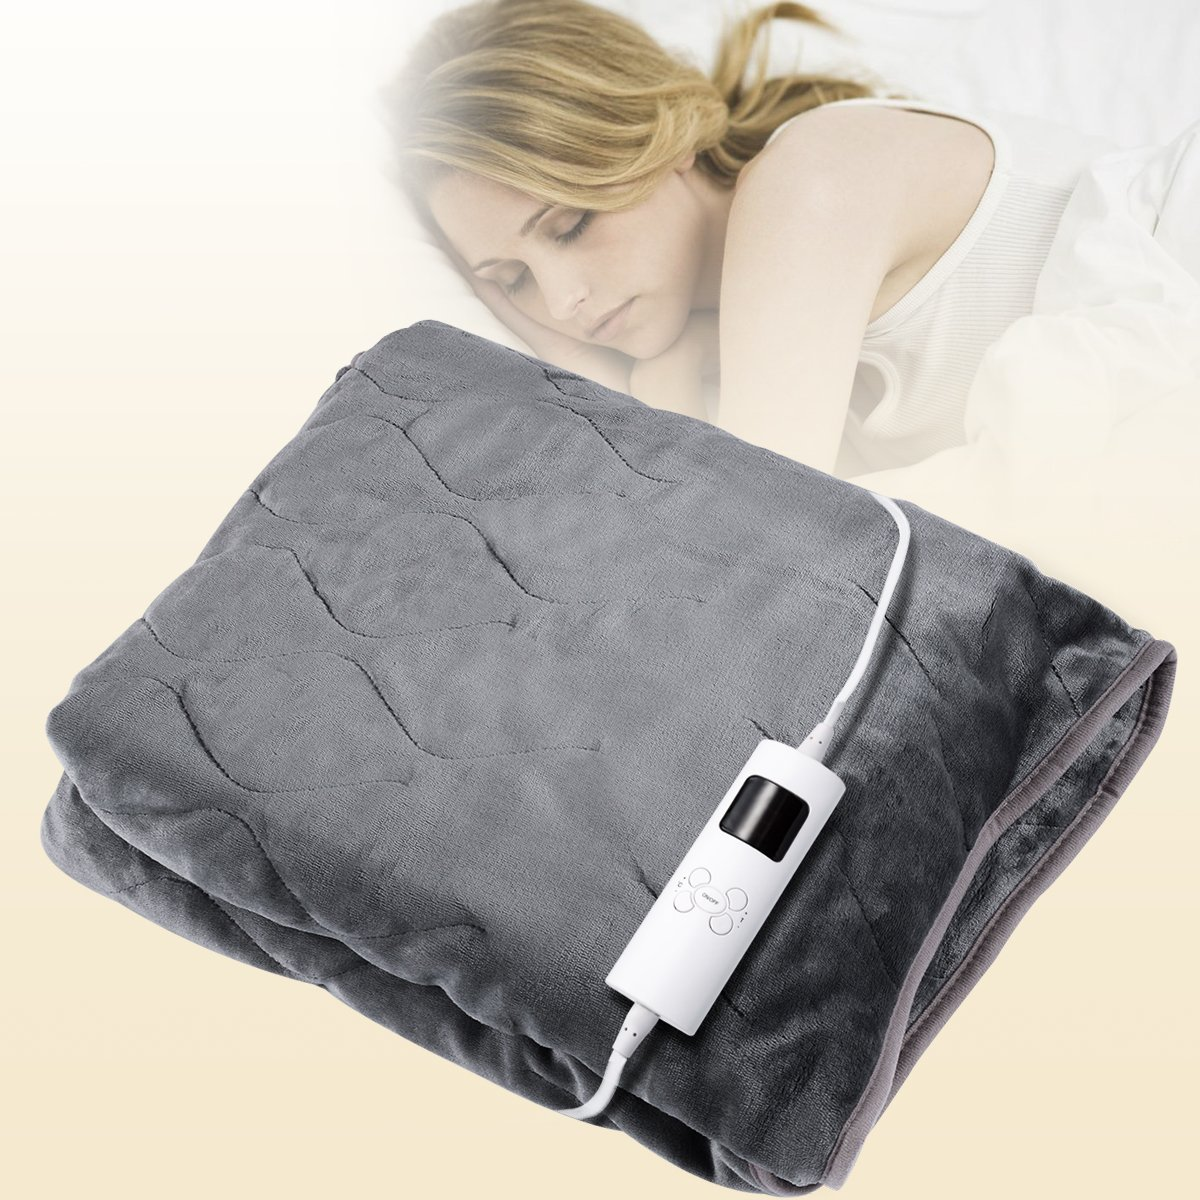 Costway Electric Blanket, Heated Over Blanket 130x160cm, Washable Soft Fleece Throw Blanket W/Monitor Warm Mattress